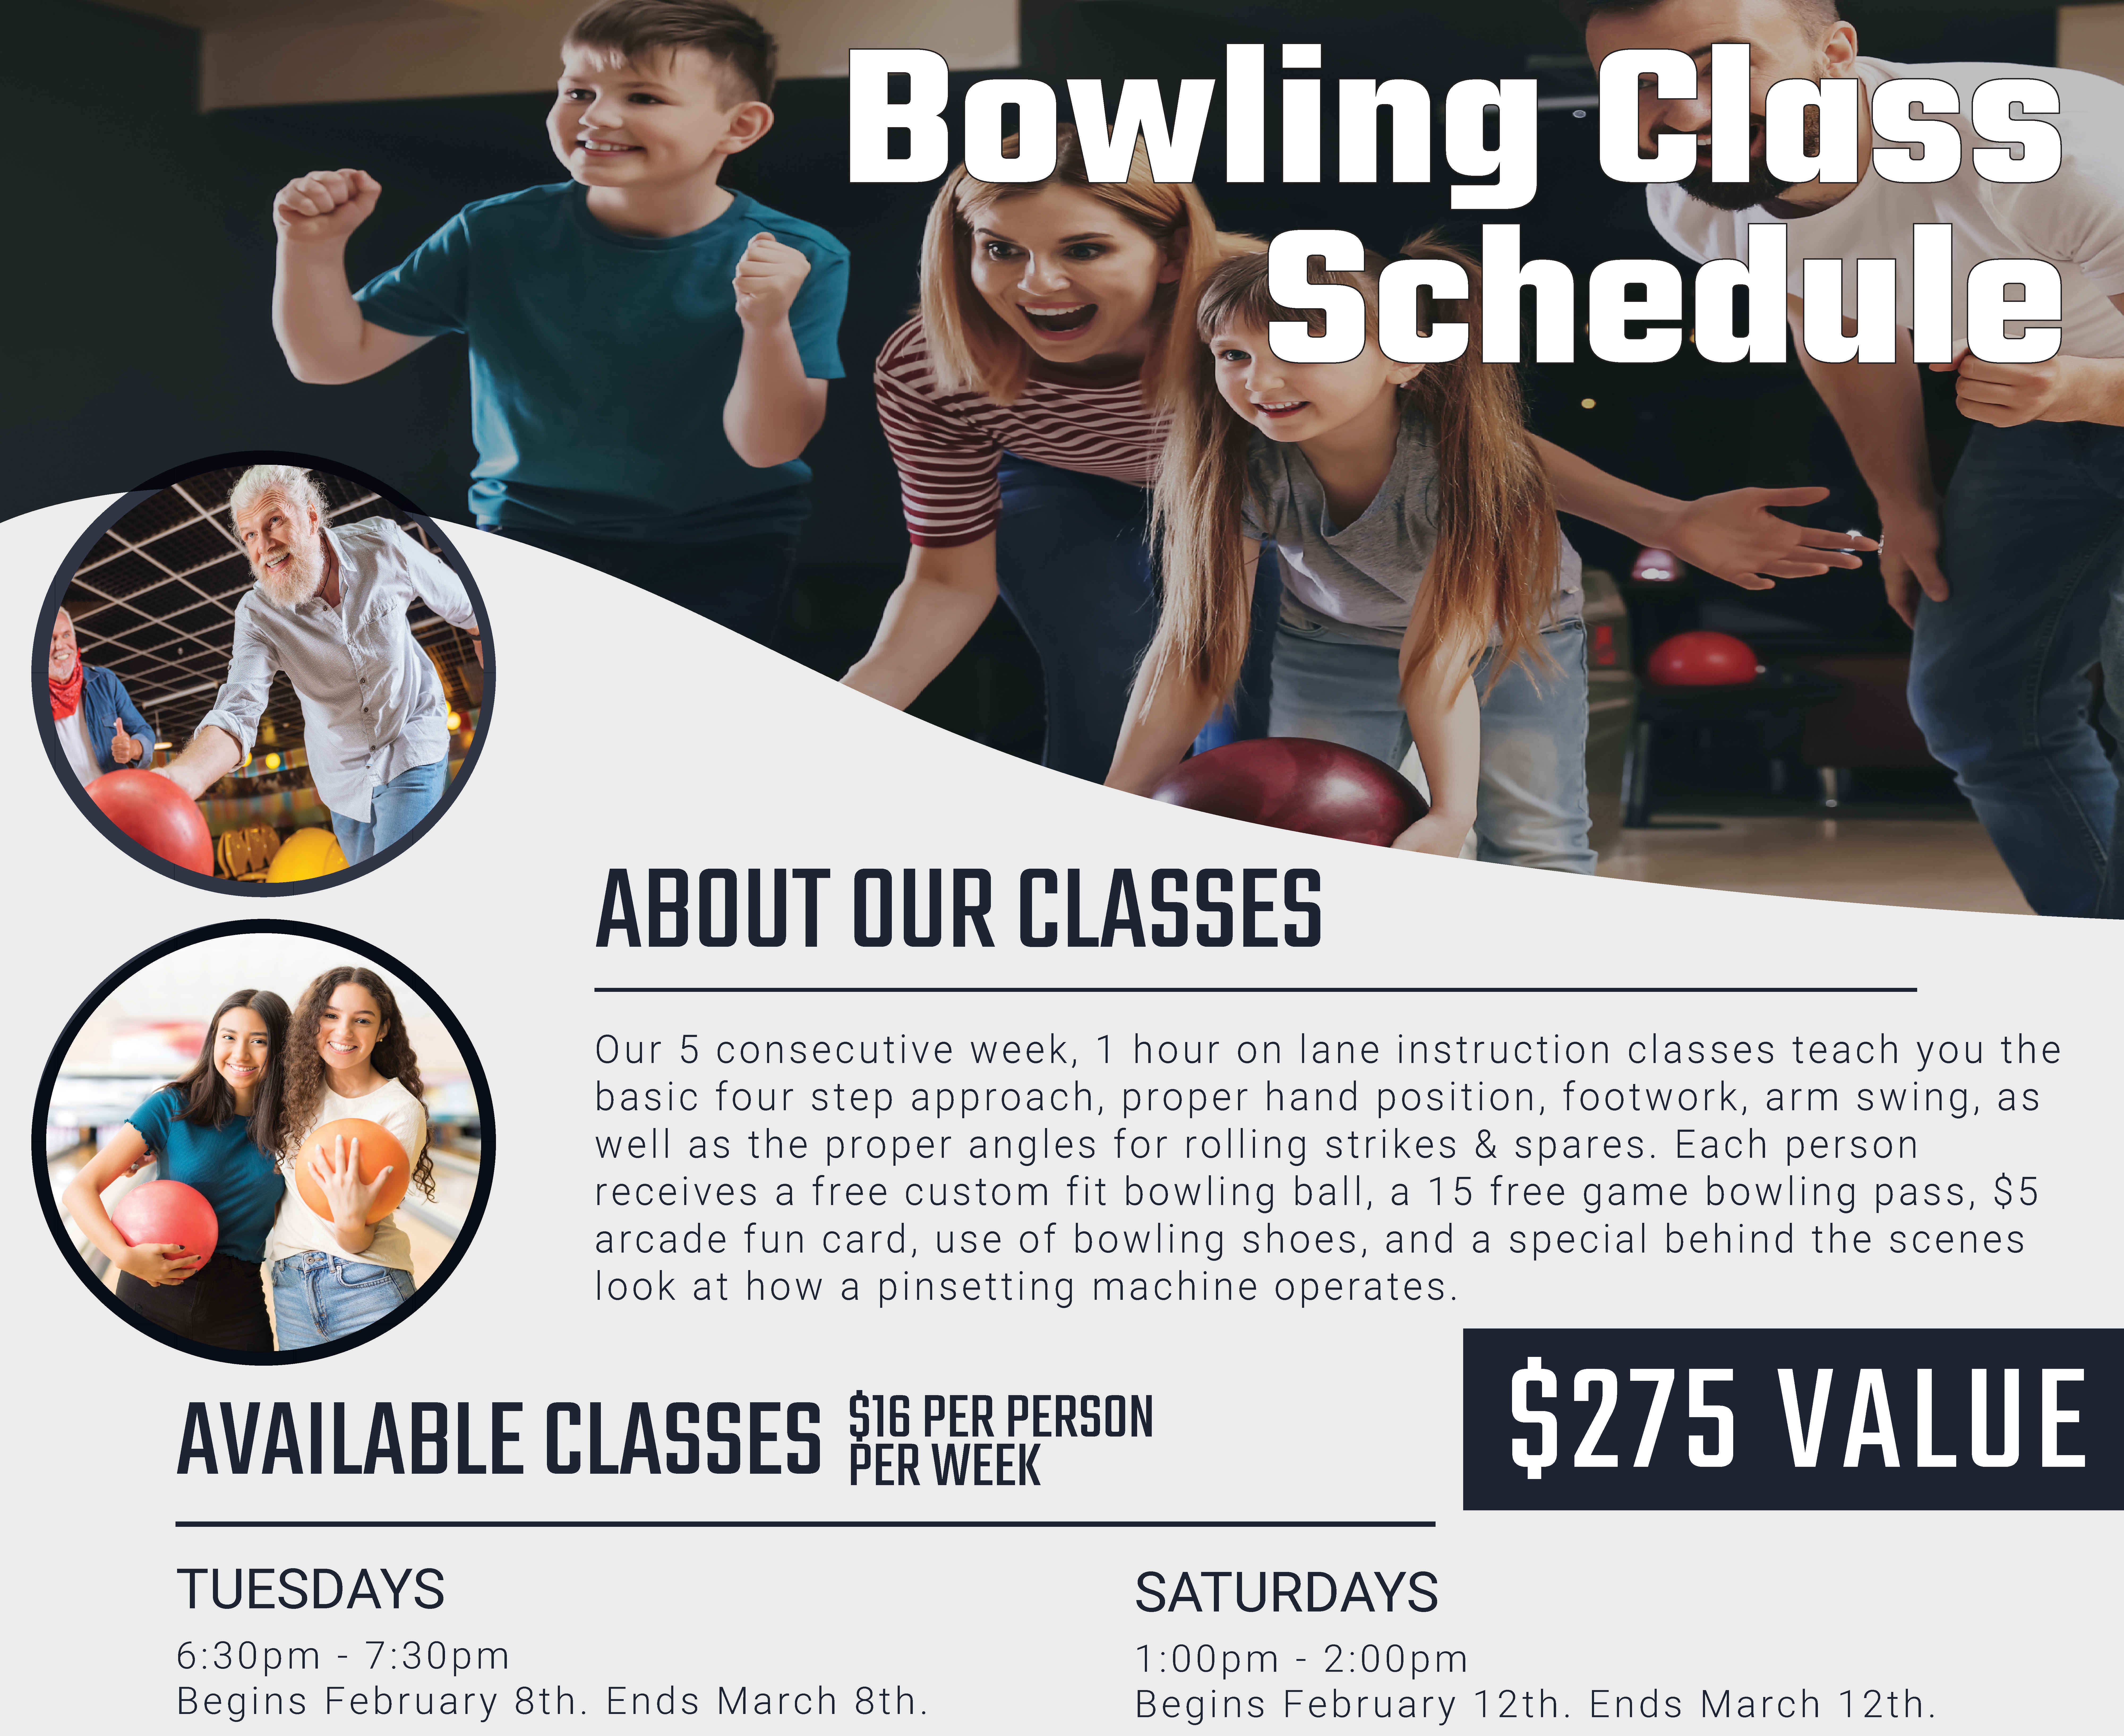 Bowling lessons and classes for everyone schedule and information